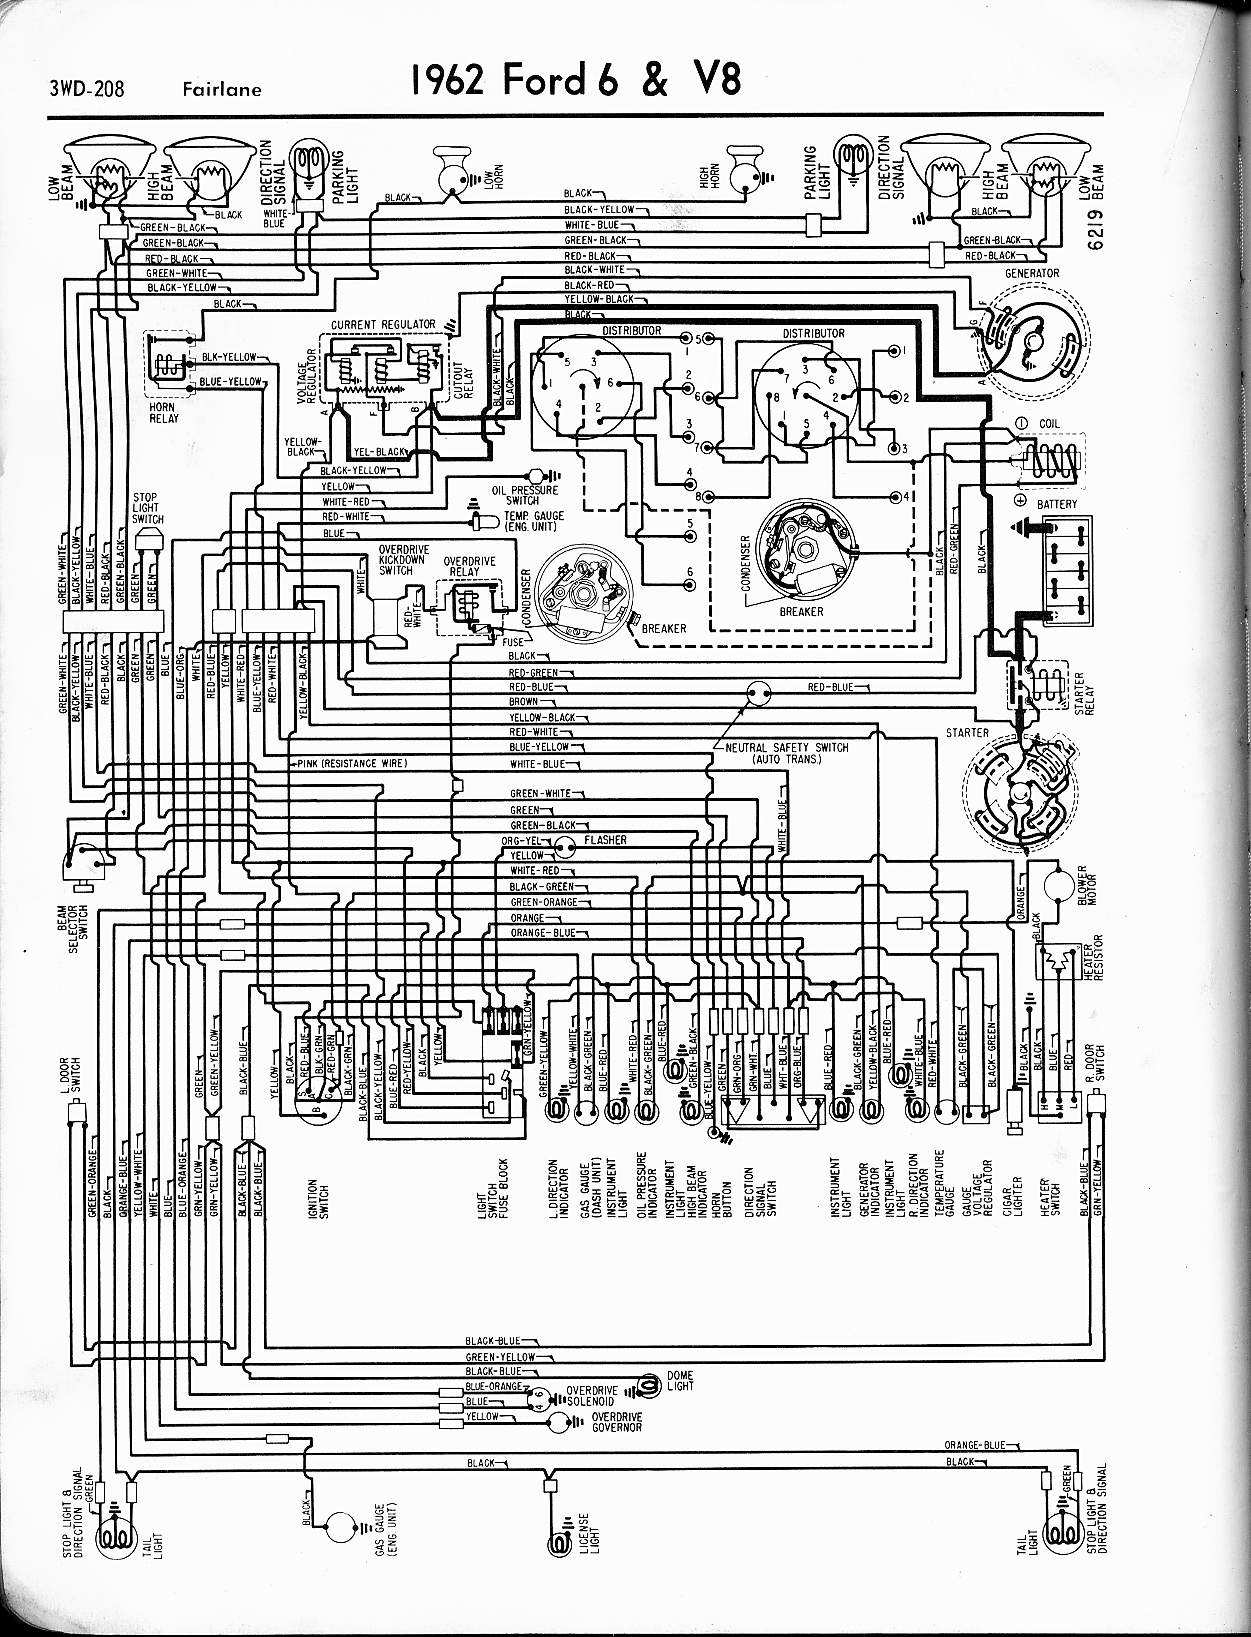 MWire5765 208 57 65 ford wiring diagrams 1962 ford fairlane wiring diagram at reclaimingppi.co